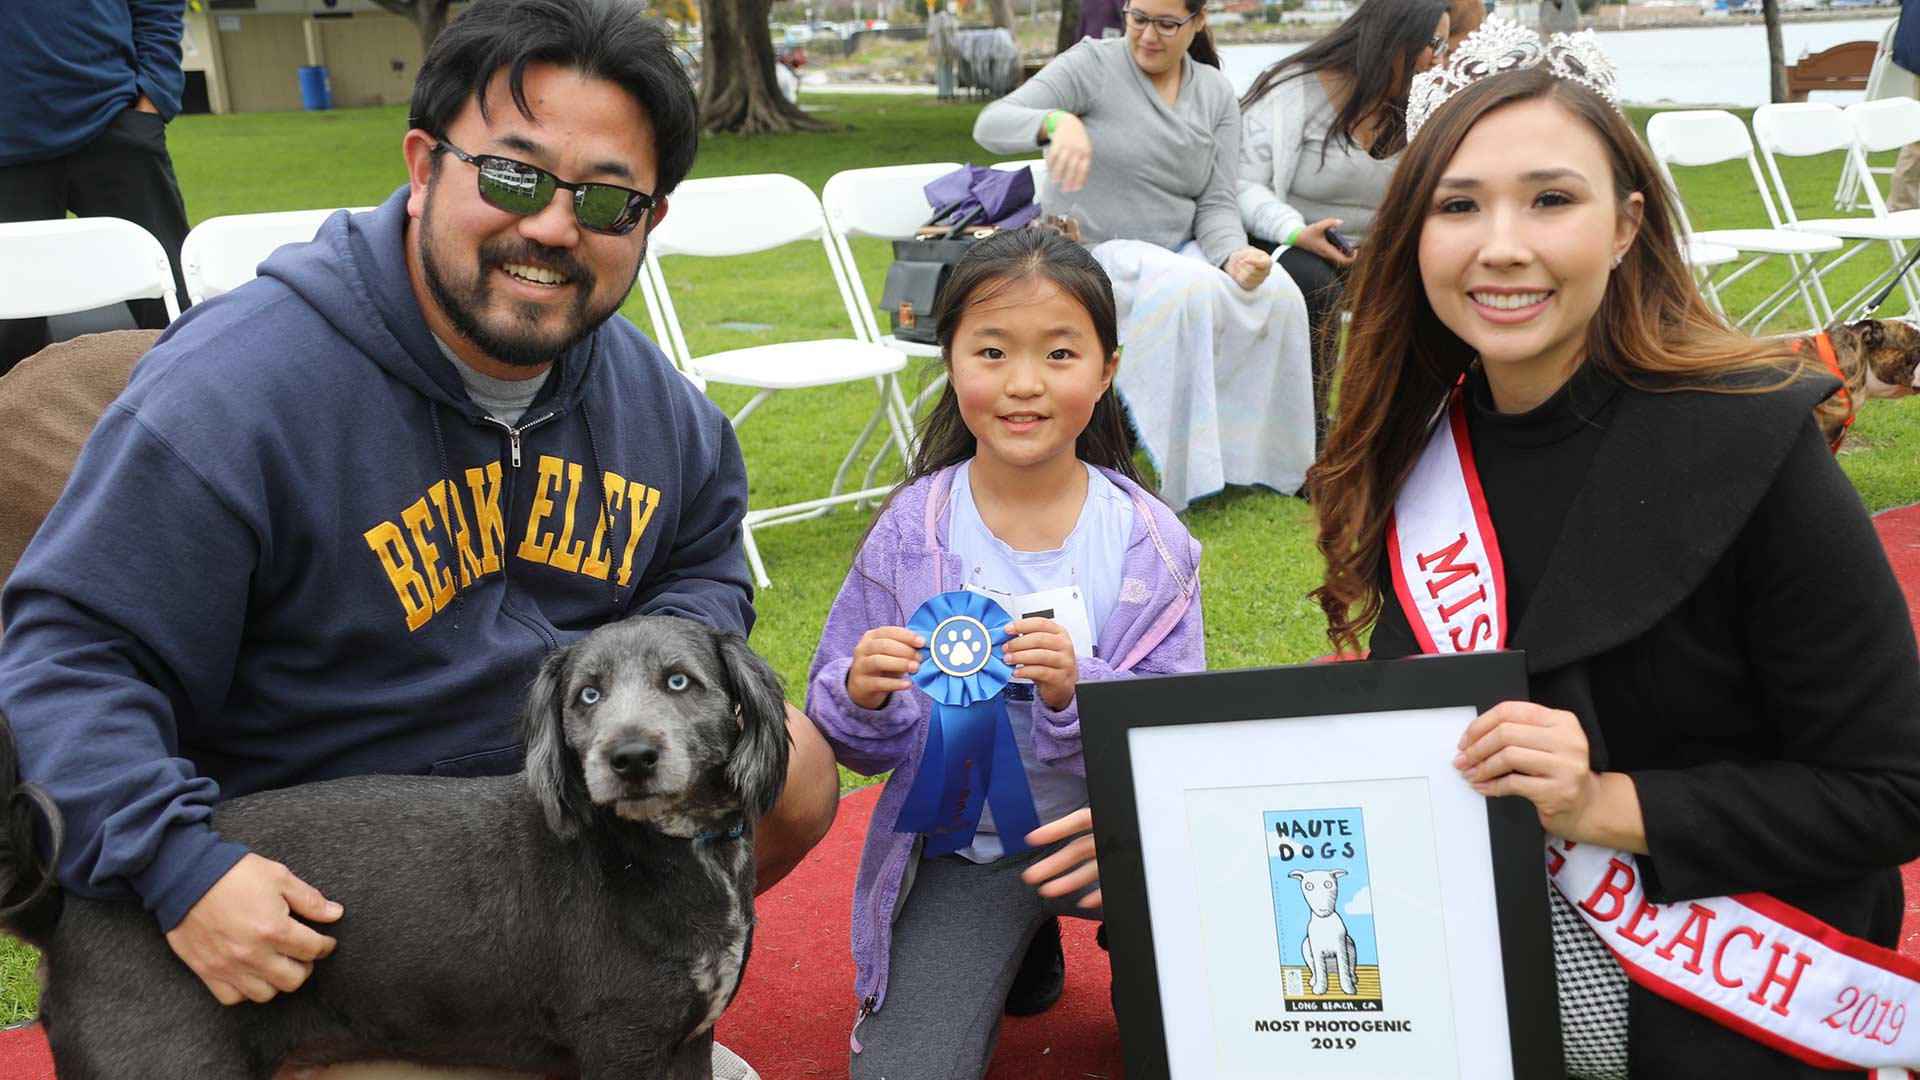 Man, child, and beauty queen pose with award-winning gray dog